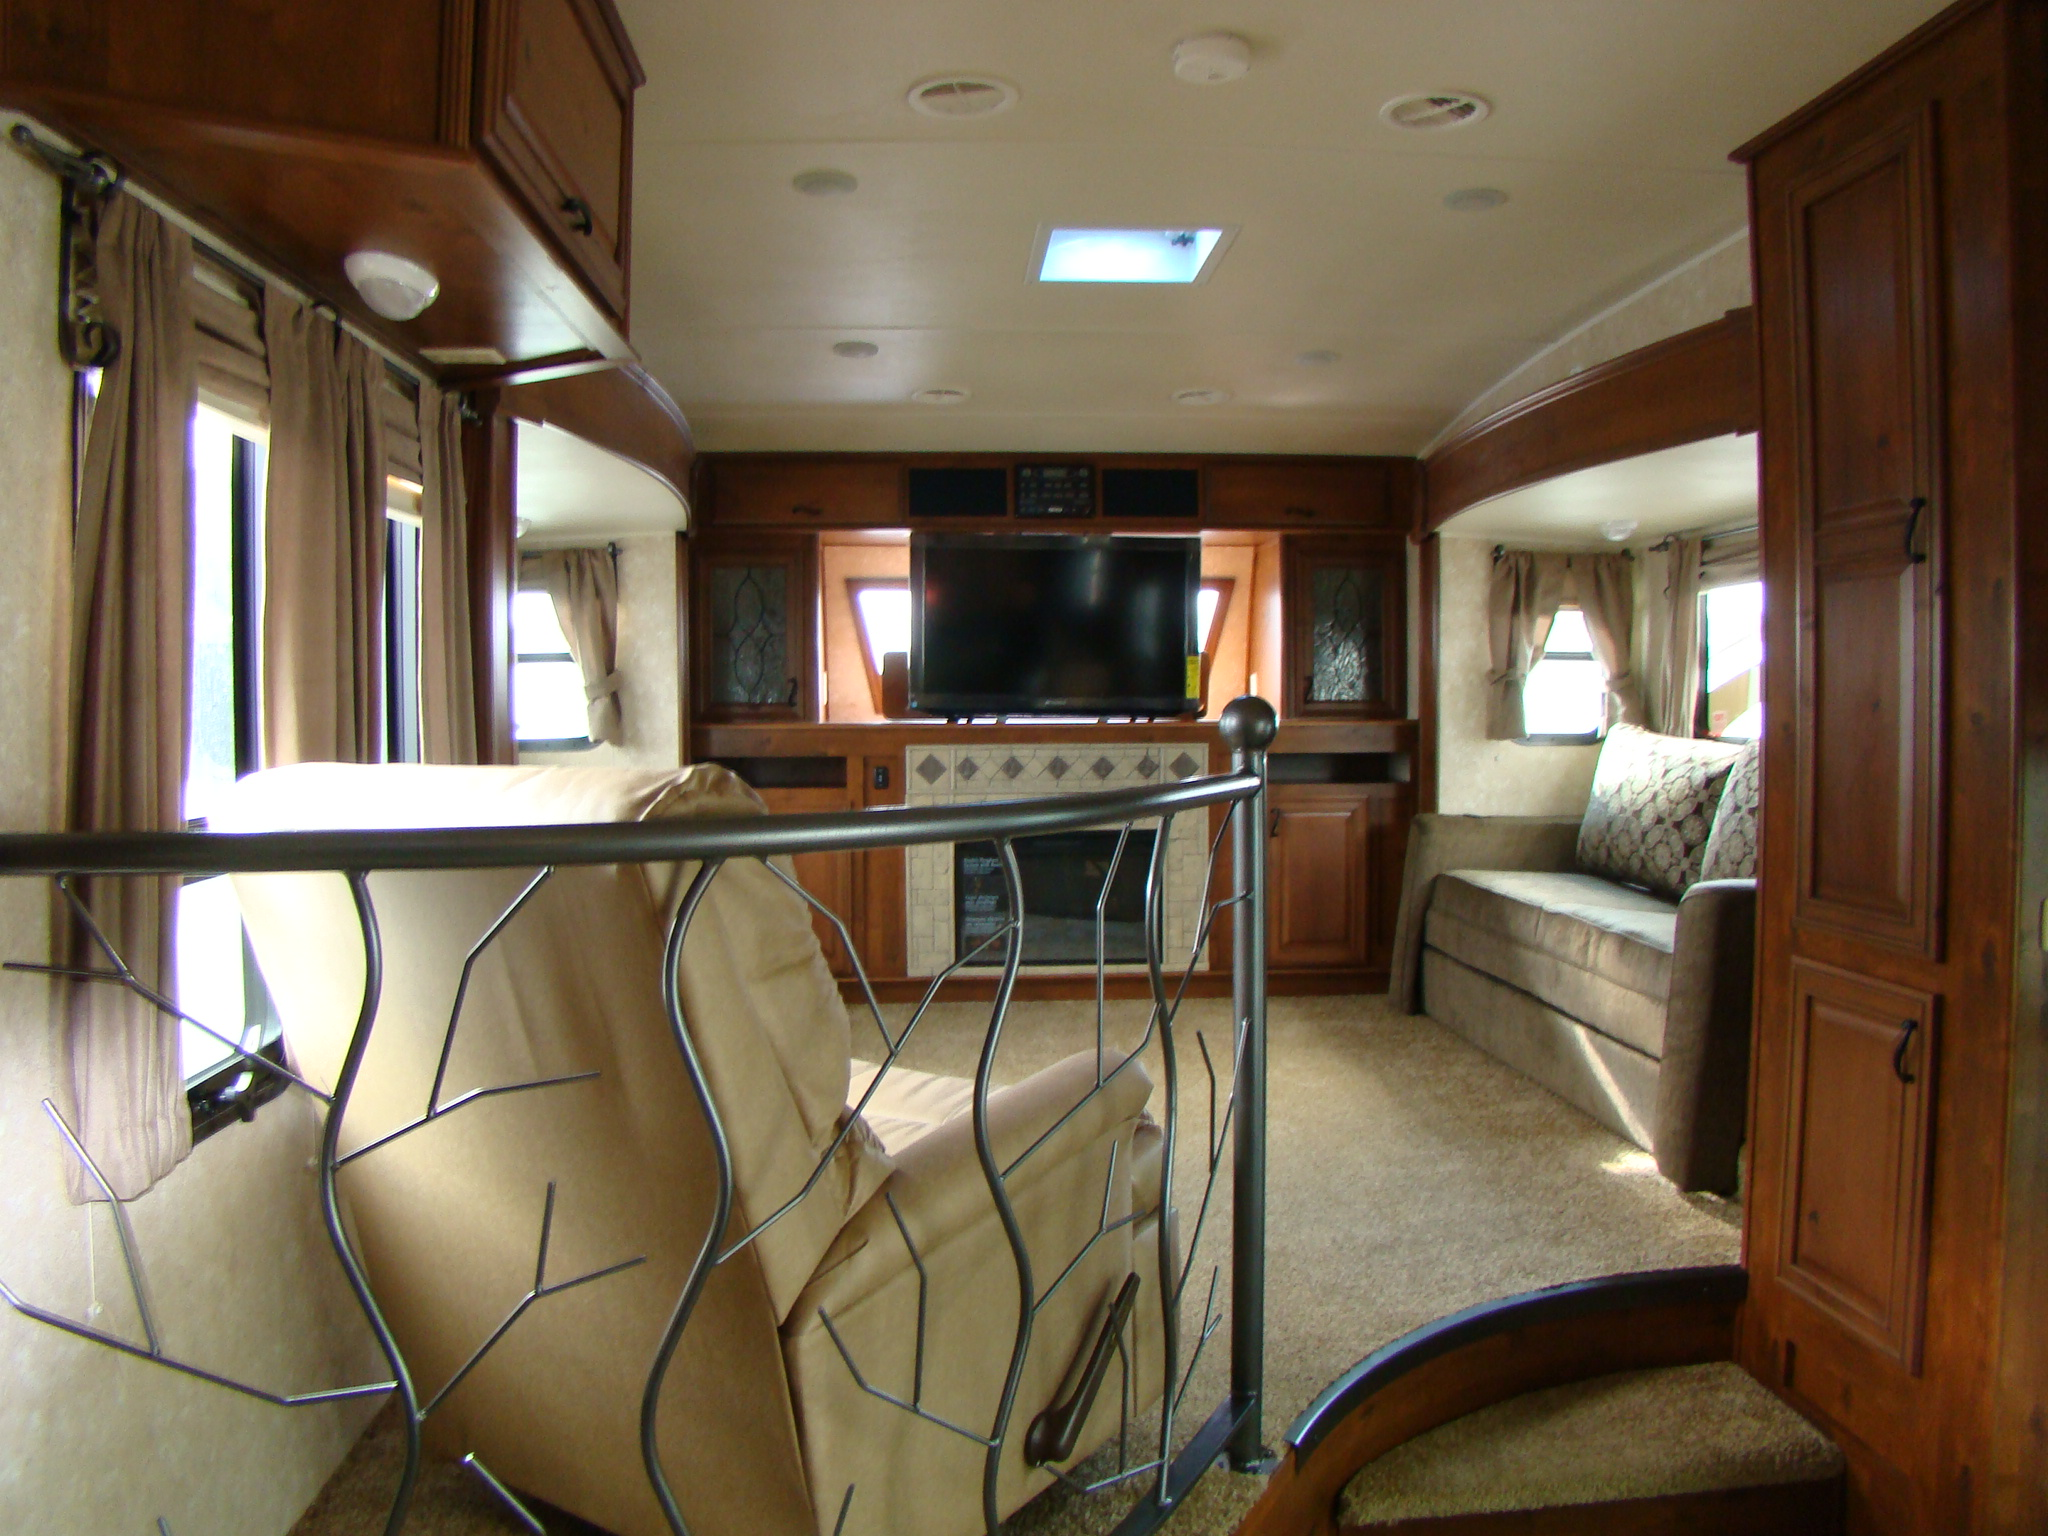 5th wheel rv front living room front living room fifth wheel rving is easy at lerch rv 25052